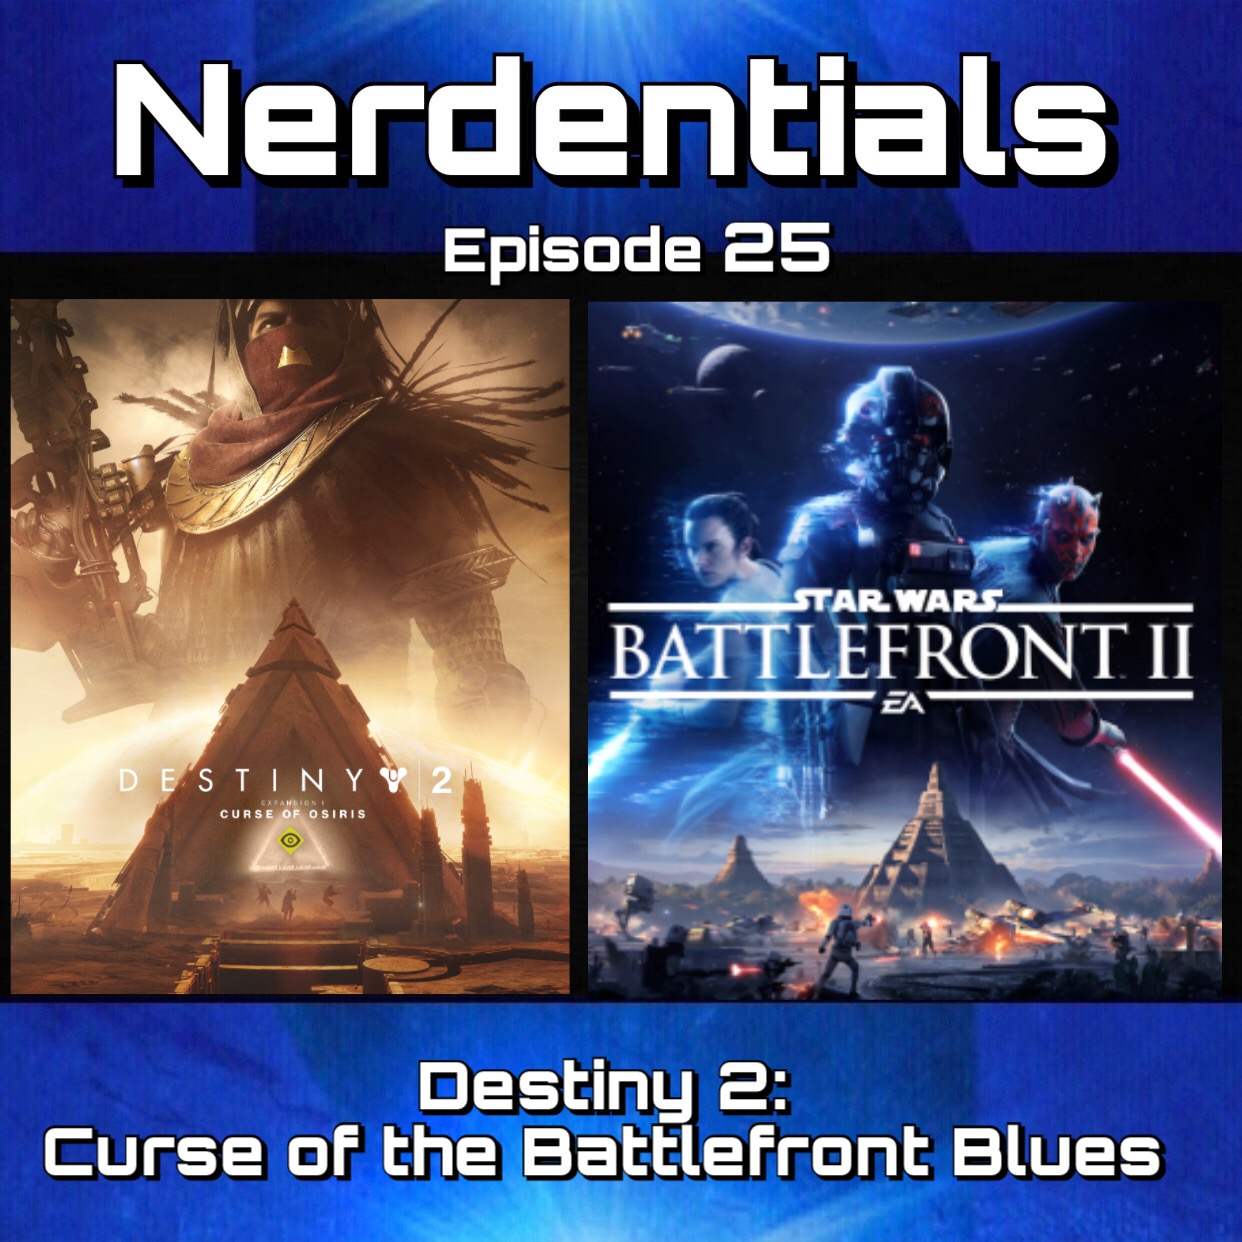 - This week your hosts, Joe, Matt, Nick and Lynn are joined once again by guest Nick Hayes of the Geekologist Radio Podcast! The Nerds circle 'round the table to discuss recent gaming obsessions...little bit of PUBG and Fortnite chatter...then we swing into heart felt thoughts and concerns on Destiny 2's first DLC, Curse of Osiris! Then the team shifts on over to the divisively fan split title Star Wars: Battlefront 2! Kick back and enjoy!